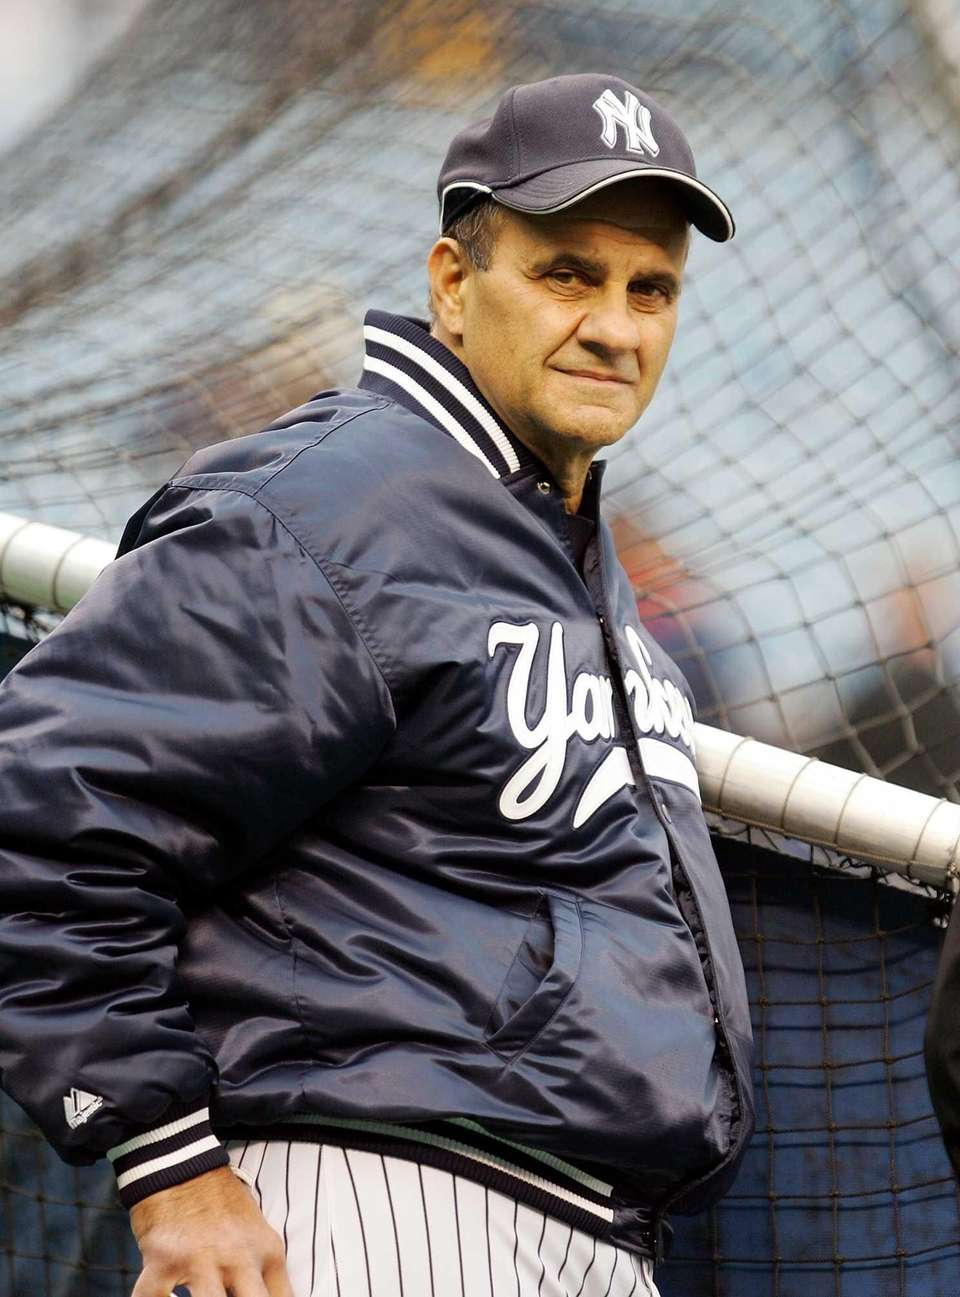 5. JOE TORRE Record: 2326-1997 Teams: Mets (1977-81),